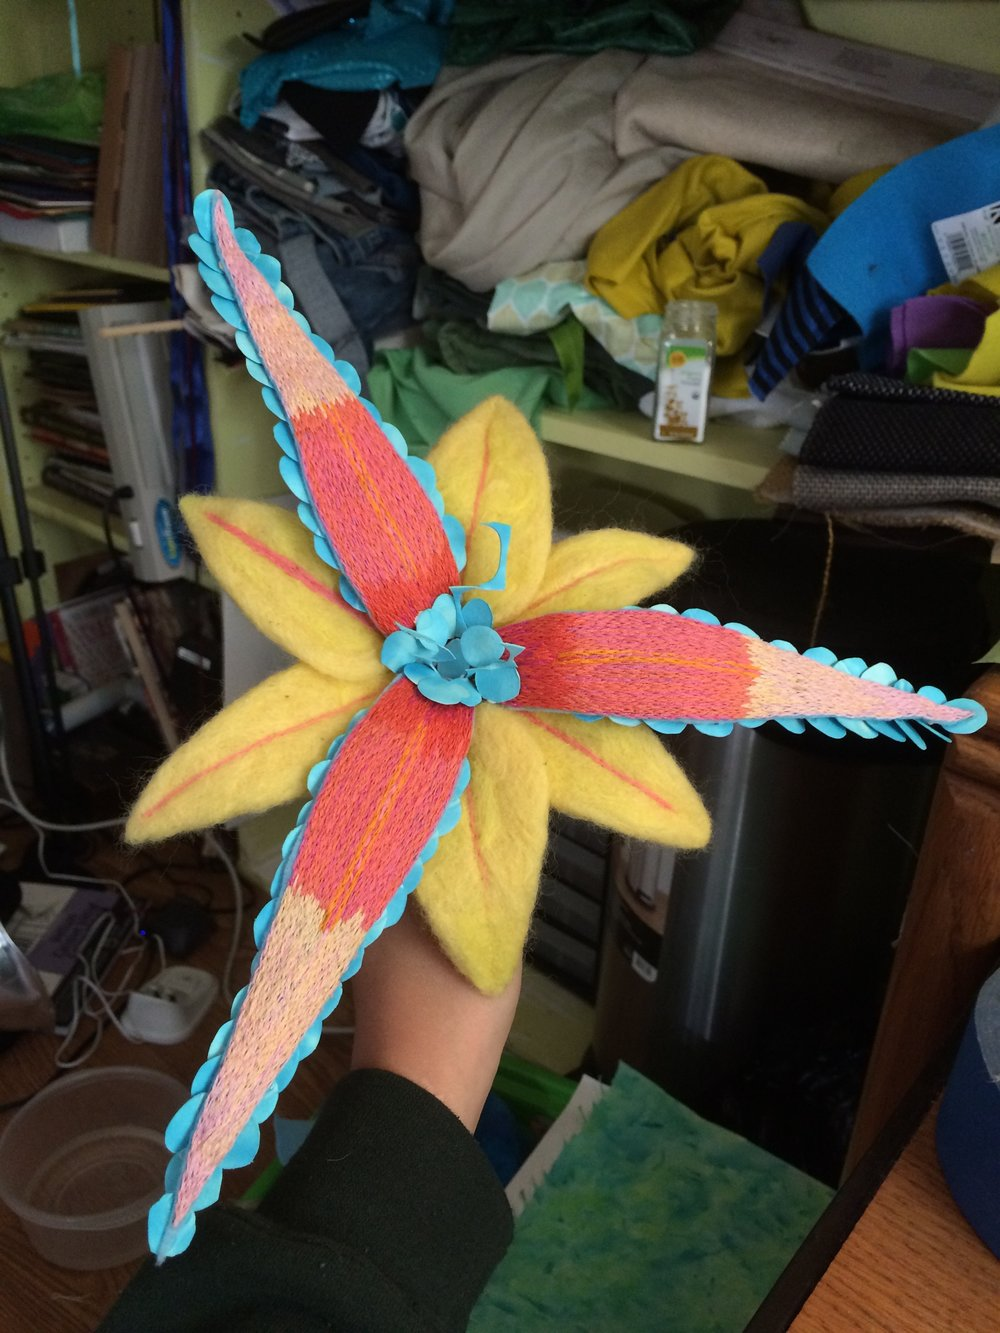 A flower made from wool felting, embroidery, watercolor paintings, and wire.